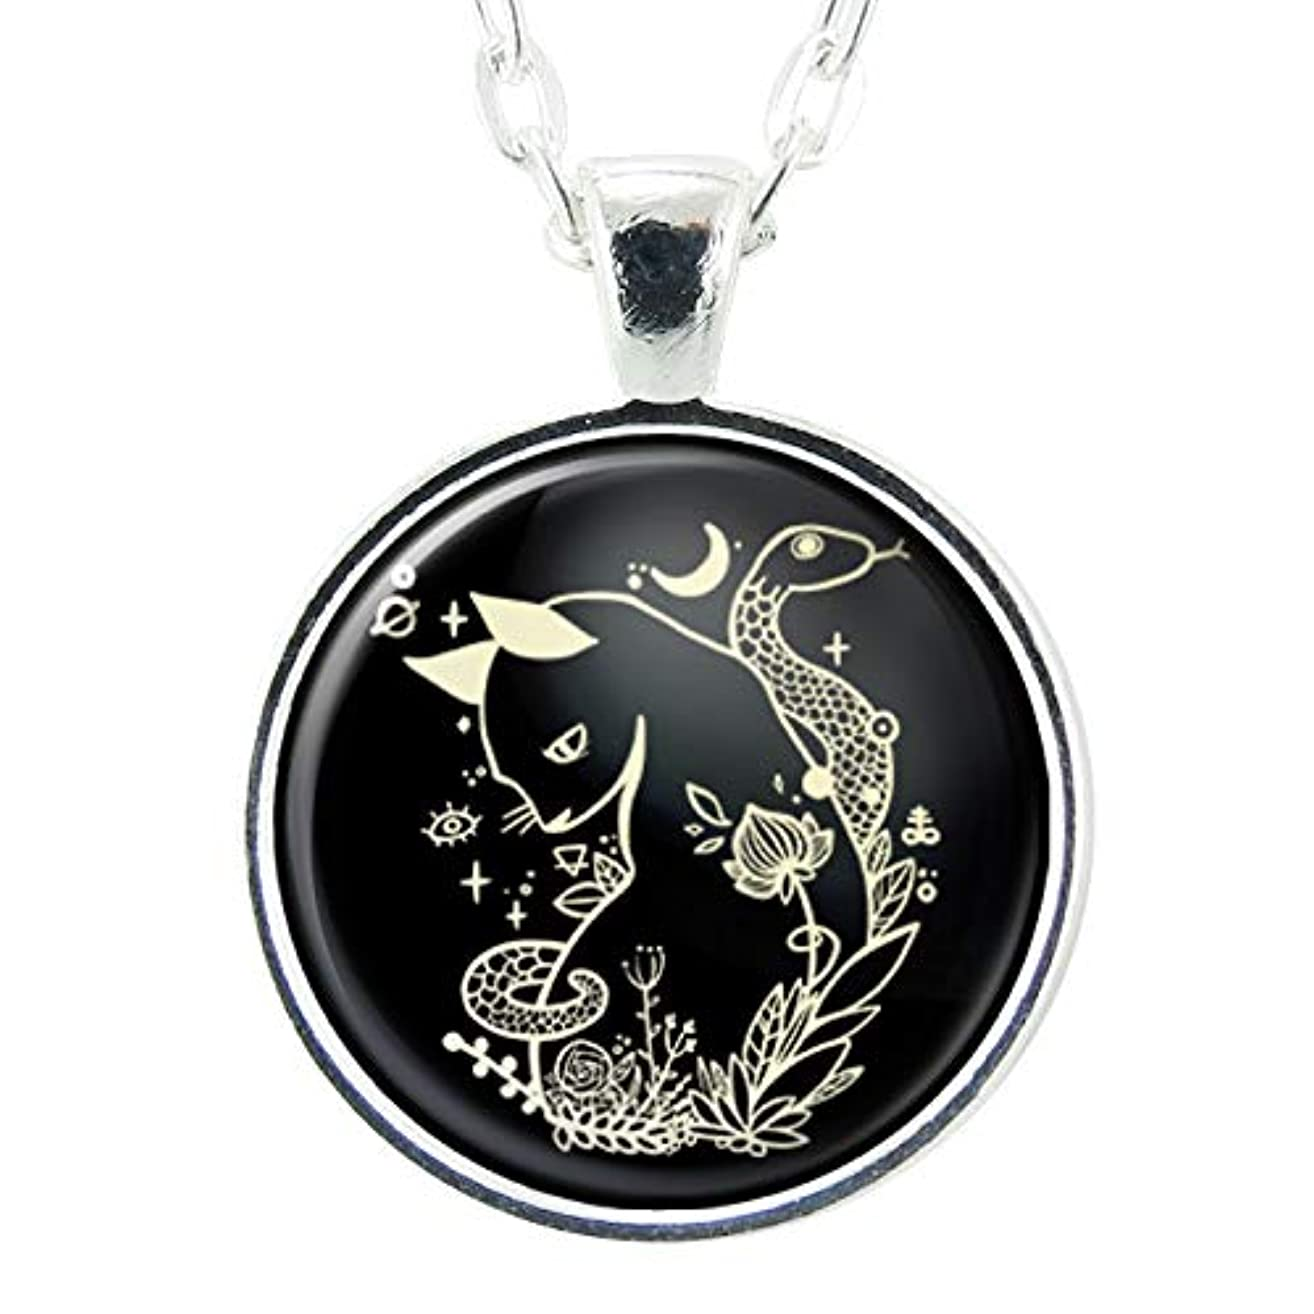 Cat And Snake Handmade Art Pendant Necklace, Black Charm With Chain